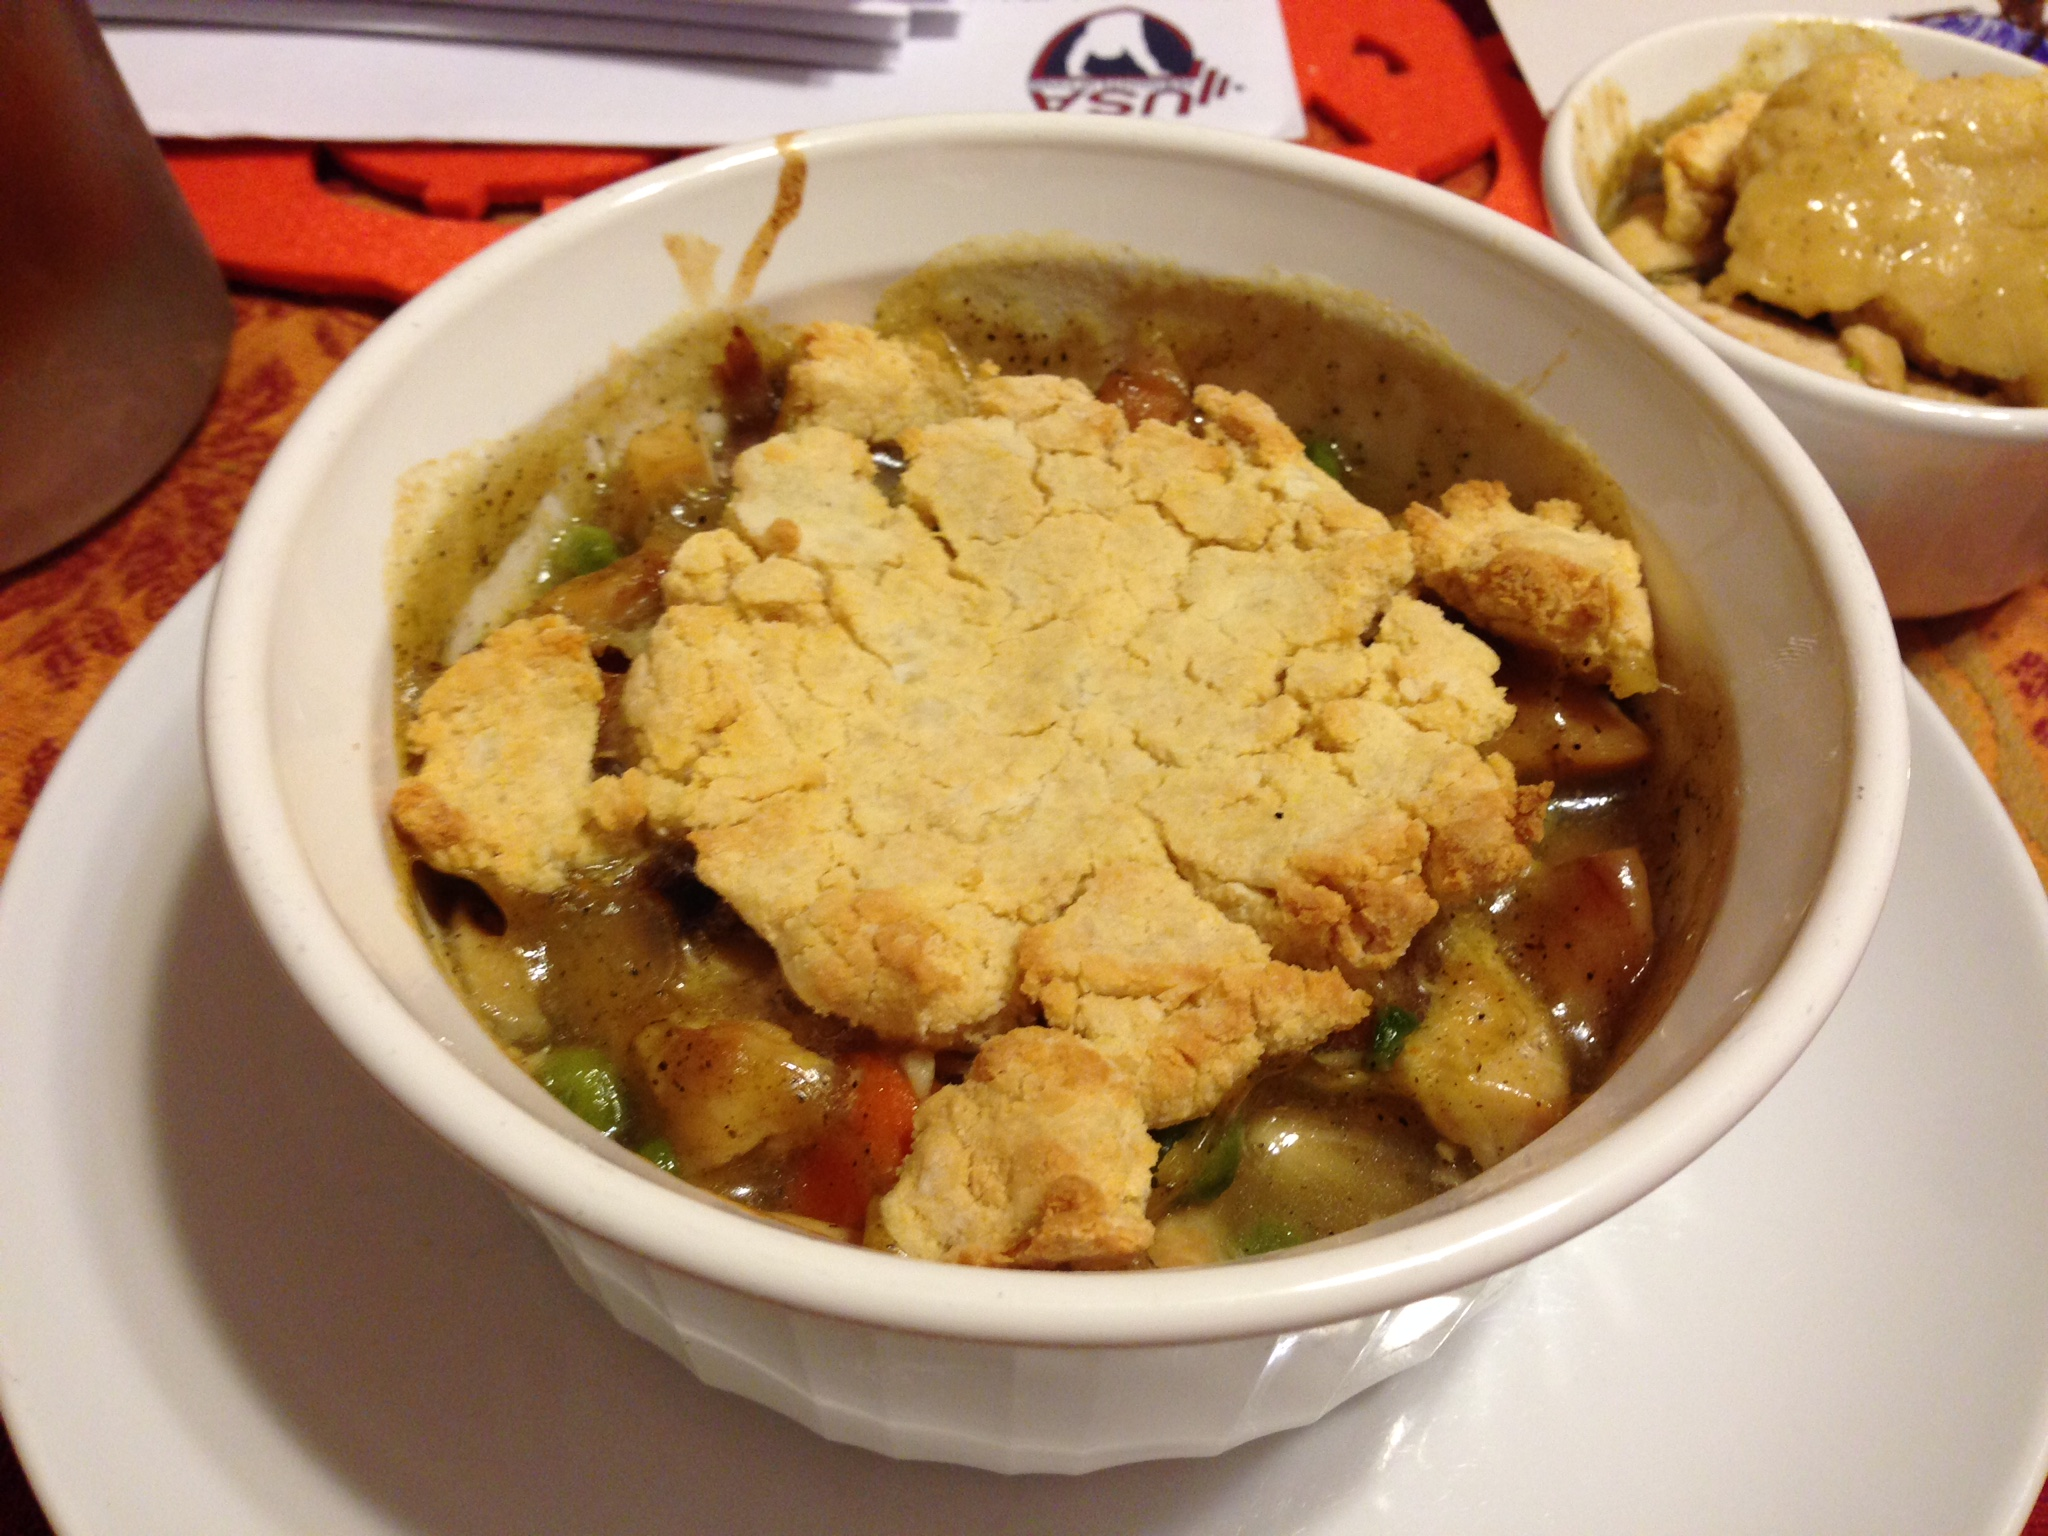 THIS Paleo Chicken Pot Pie is unreal. The small dish in the background was after Duke looked under the crust and rejected it. So, I ate that one, too.